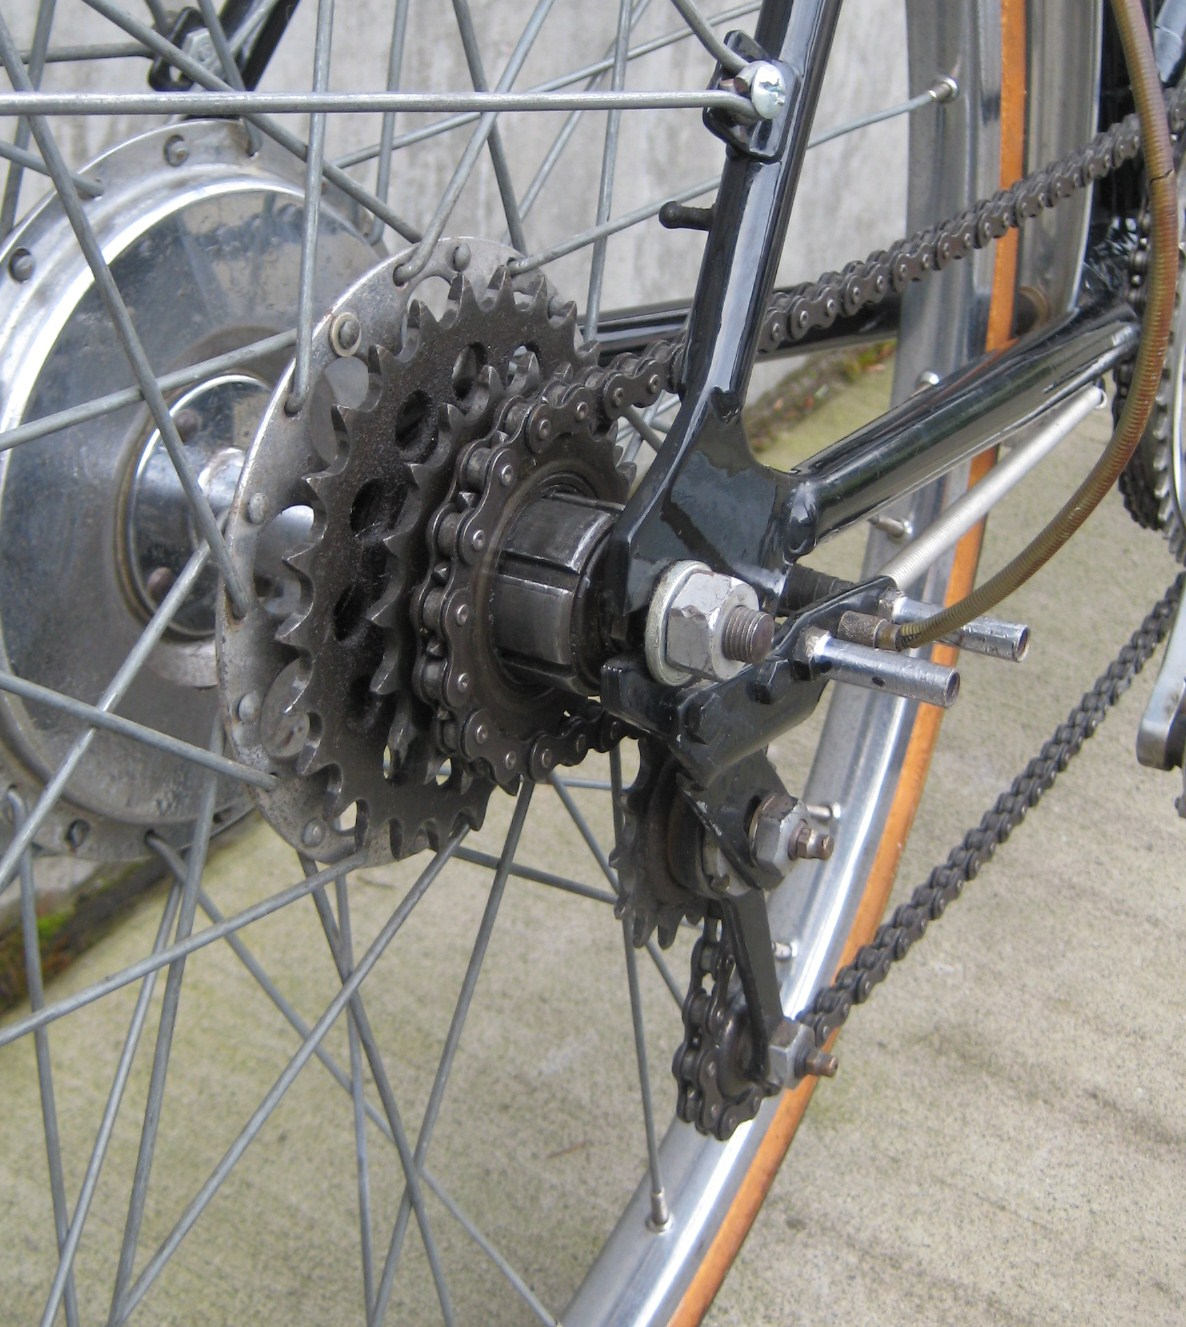 The-cogs-move-the-derailleur-stays-in-place.jpg